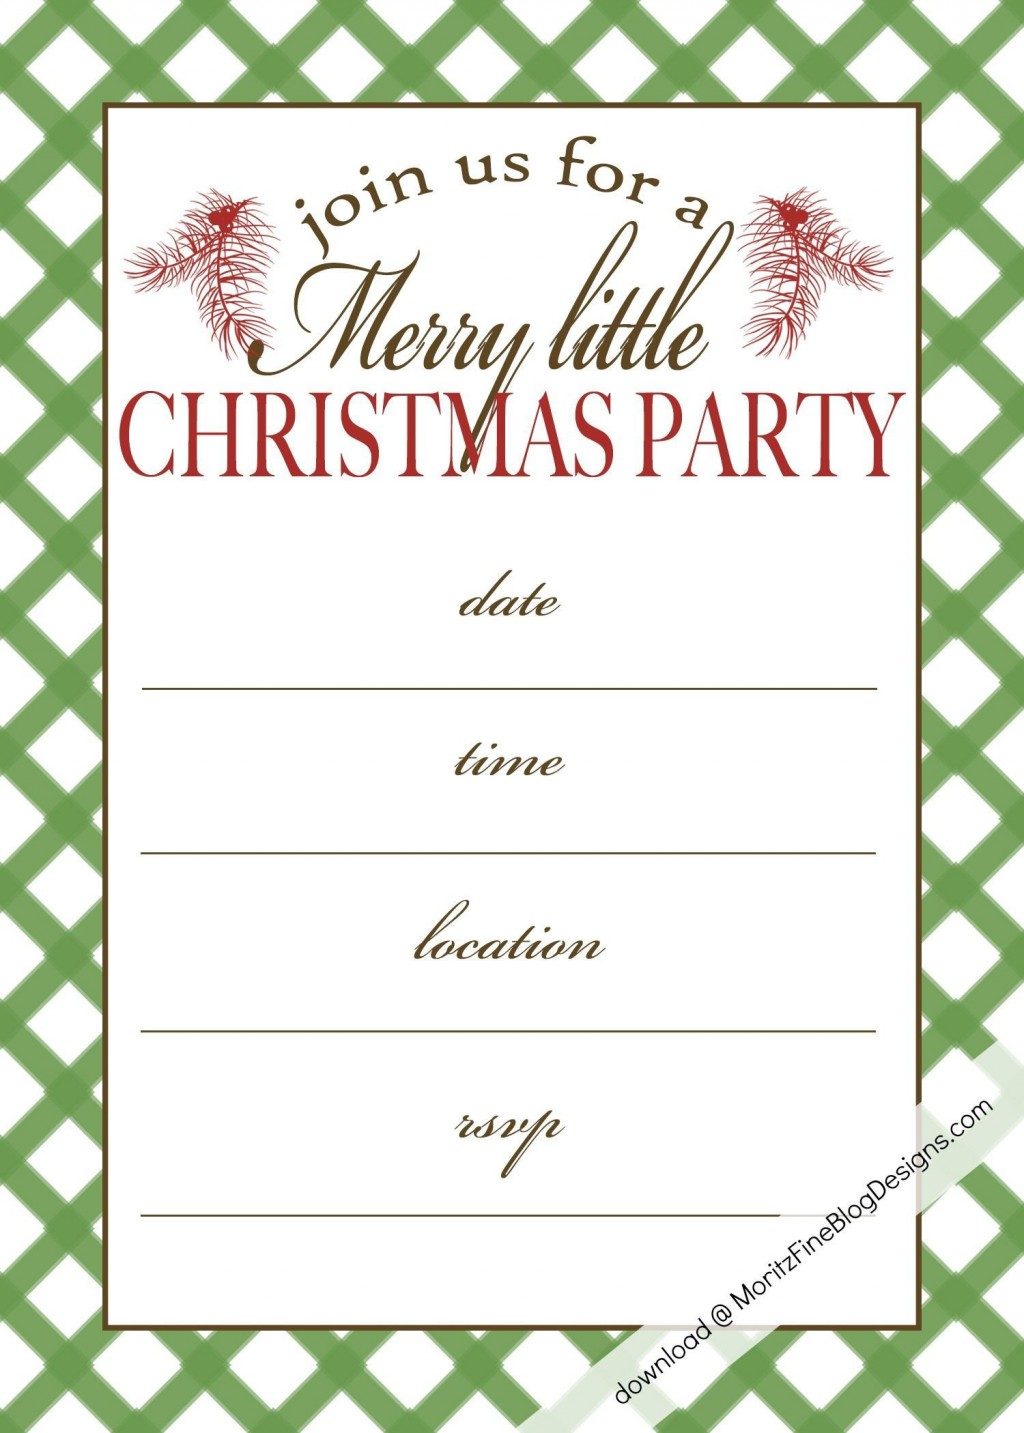 003 Unforgettable Christma Party Invite Template Highest Quality  Microsoft Word Free Download Holiday Invitation PowerpointLarge